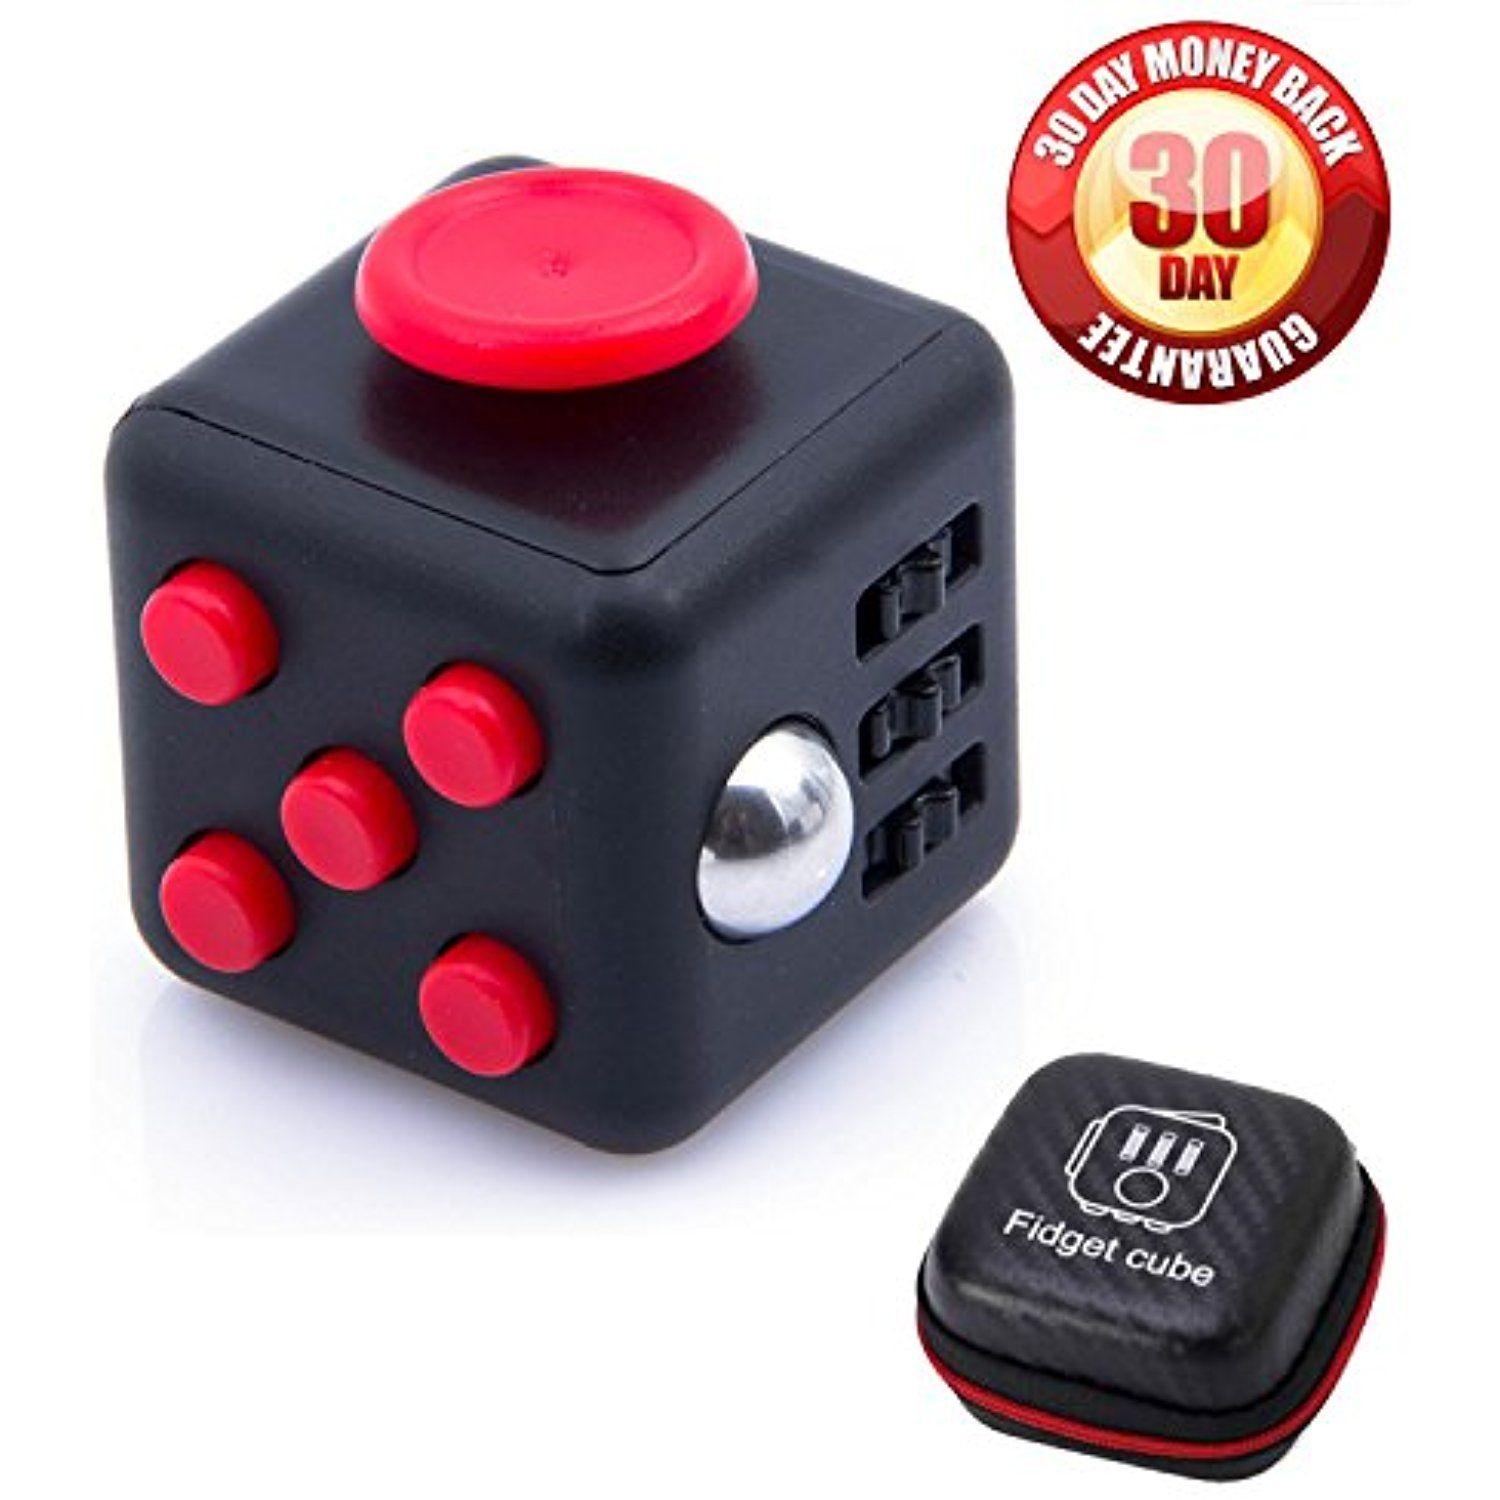 POKKOP 2017 Fid Dice Cube Stress Relief Anxiety Toy Focus Gift